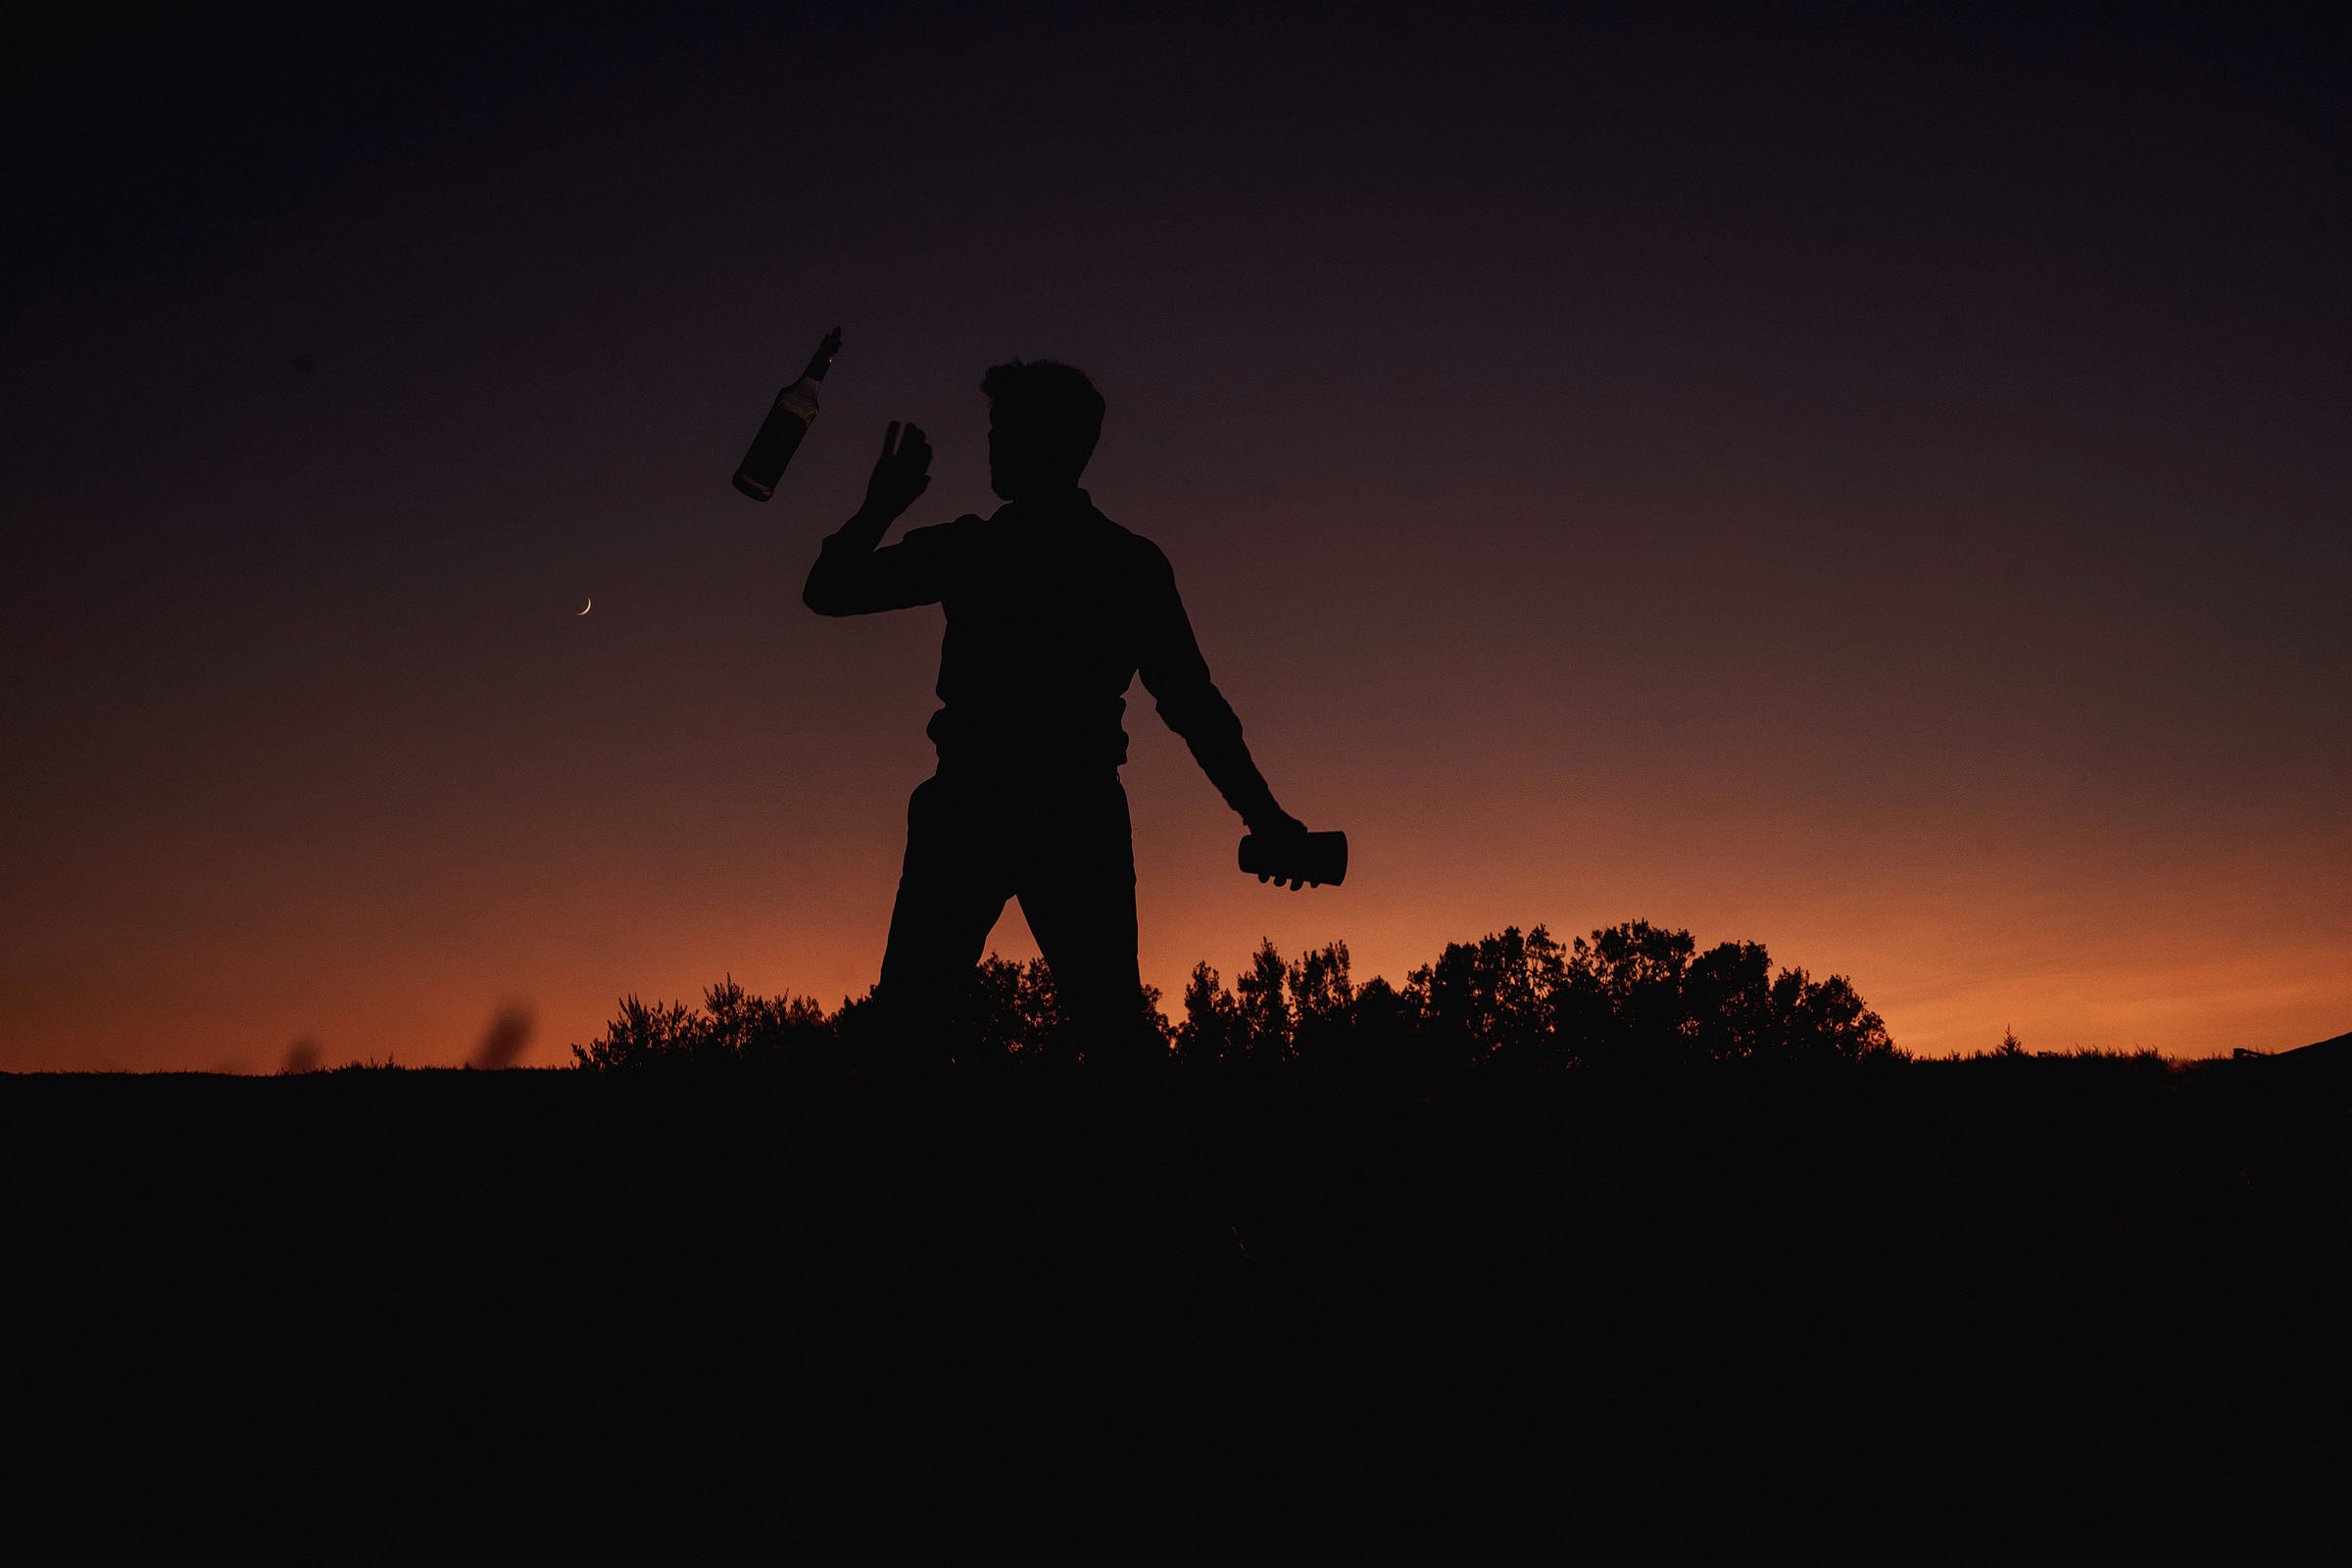 Sunset silhouette and guest catching bottle - Photo by F5 Photography